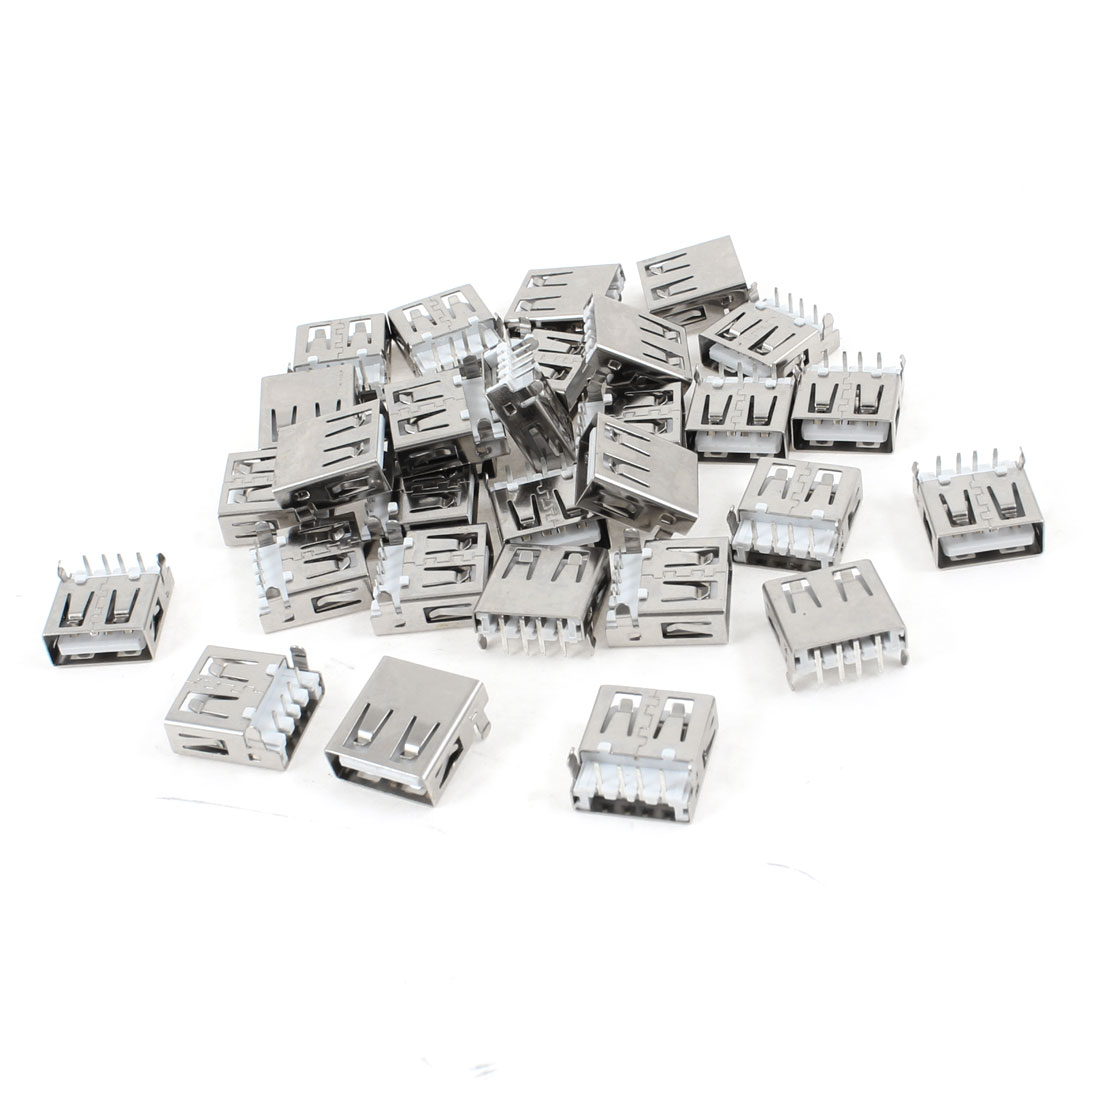 30 Pcs USB 2.0 A Female Jack Connector Right Angle 4-Pin DIP Type